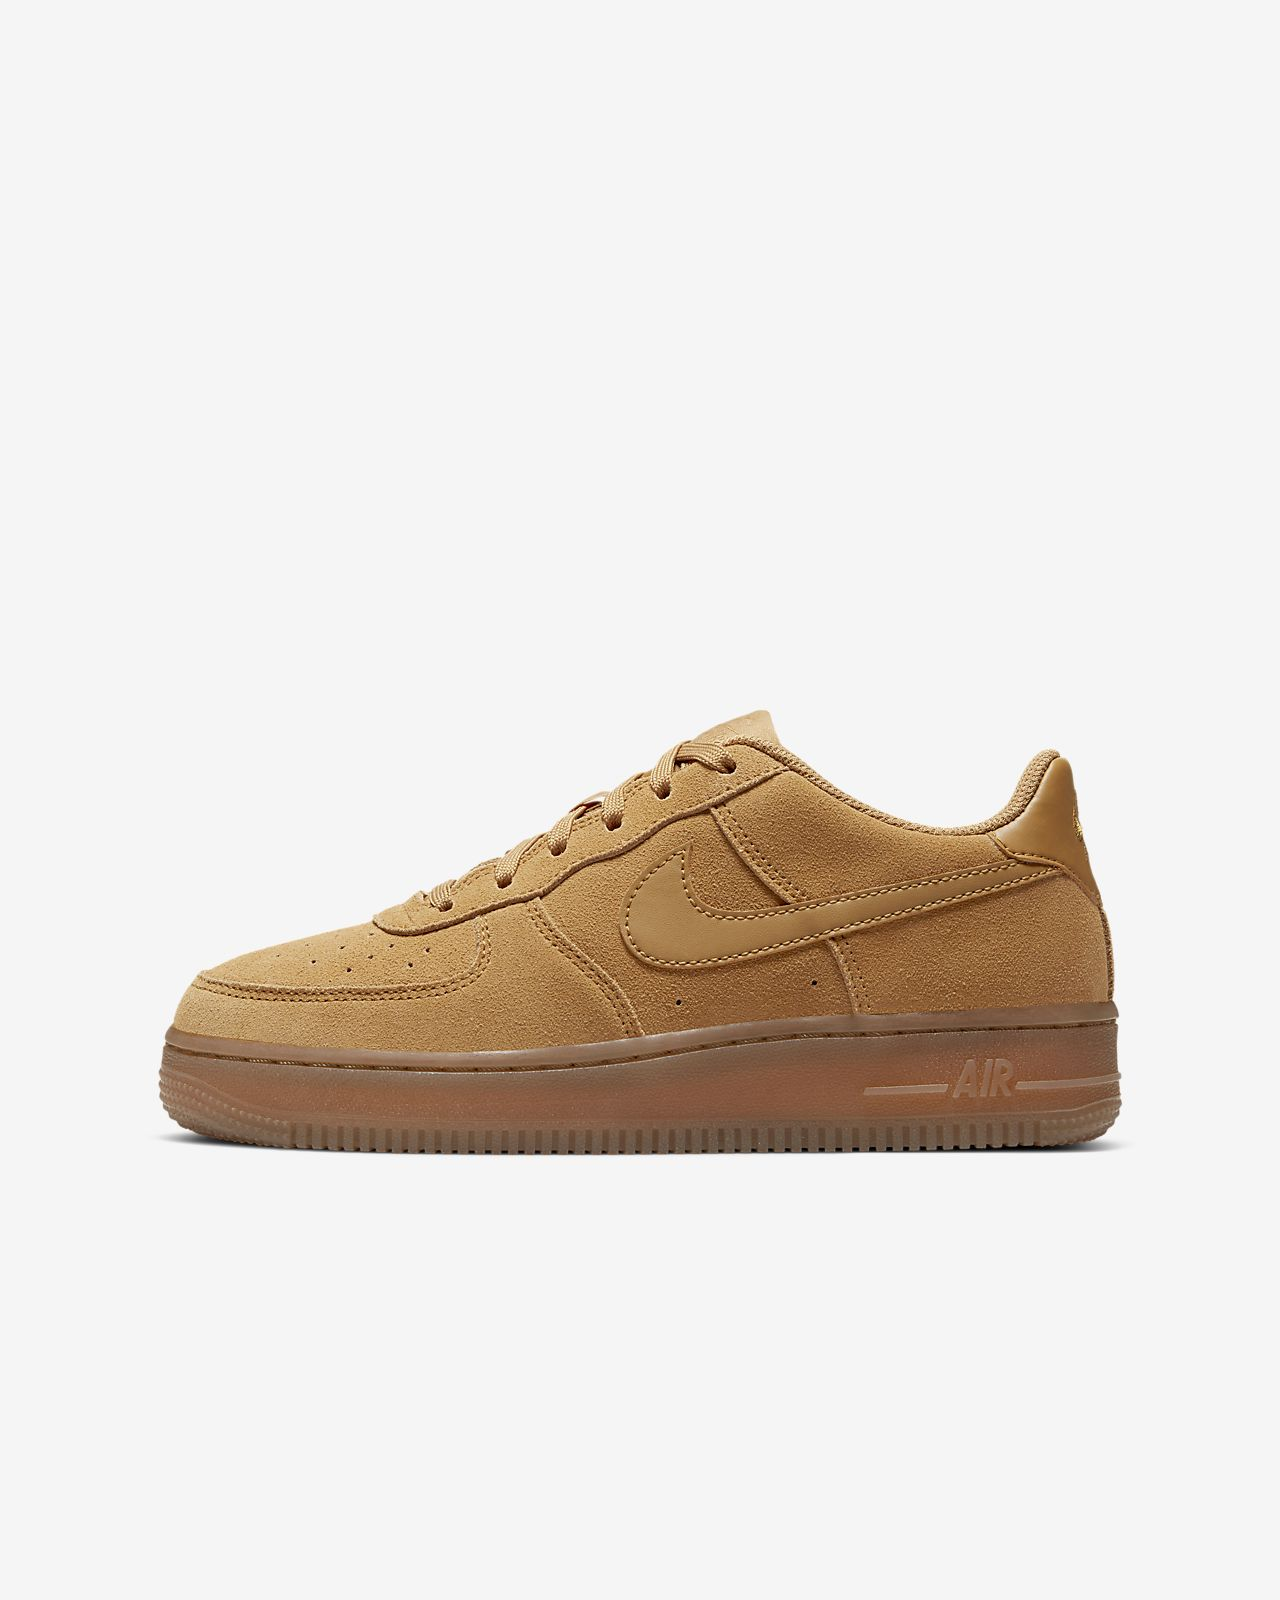 Nike Air Force 1 LV8 3 Sabatilles - Nen/a